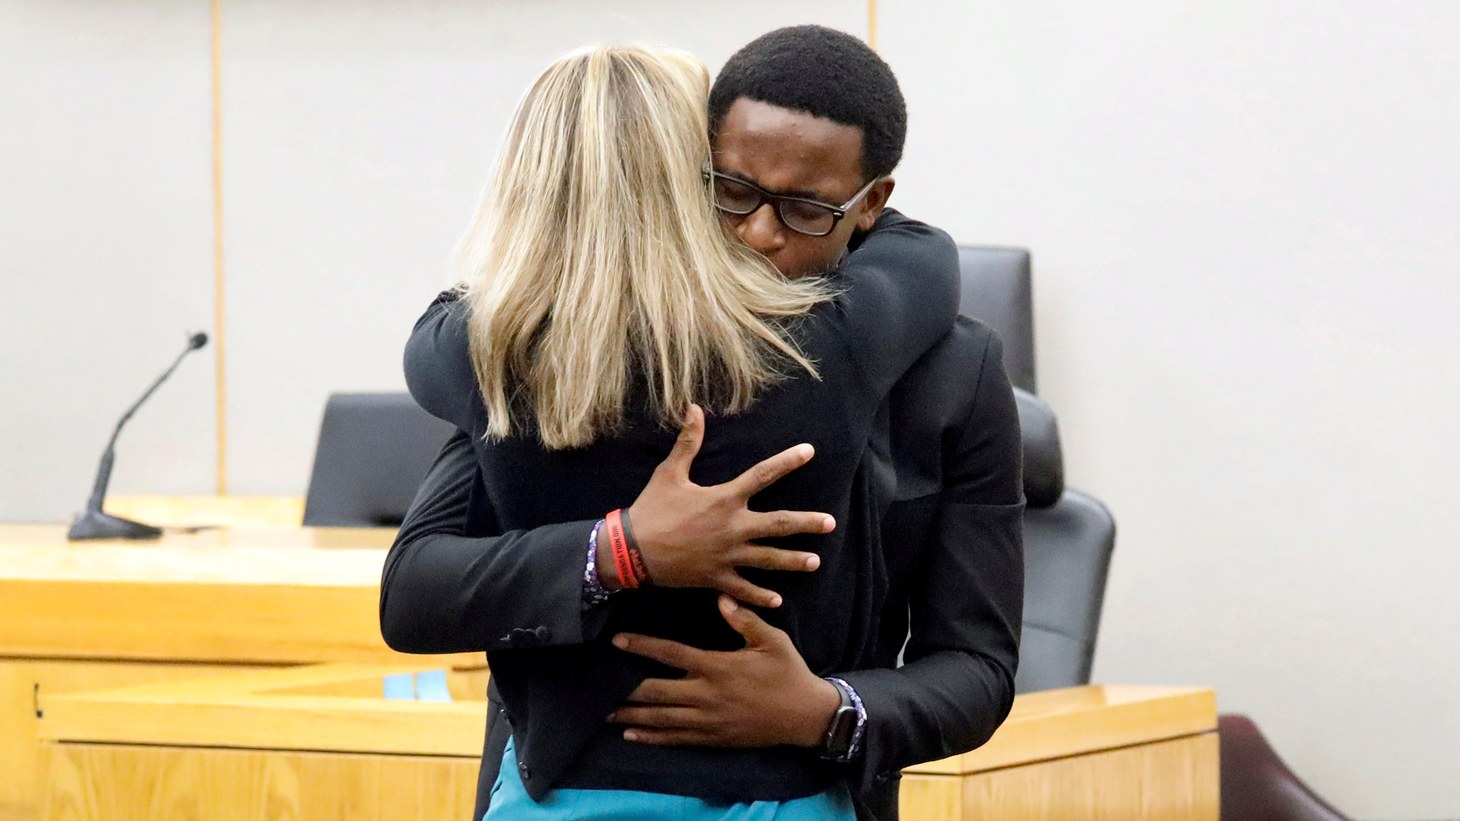 Botham Jean's younger brother Brandt Jean hugs former Dallas police officer Amber Guyger after delivering his impact statement to her following her 10-year prison sentence for murder at the Frank Crowley Courts Building in Dallas, Texas, U.S. October 2, 2019.